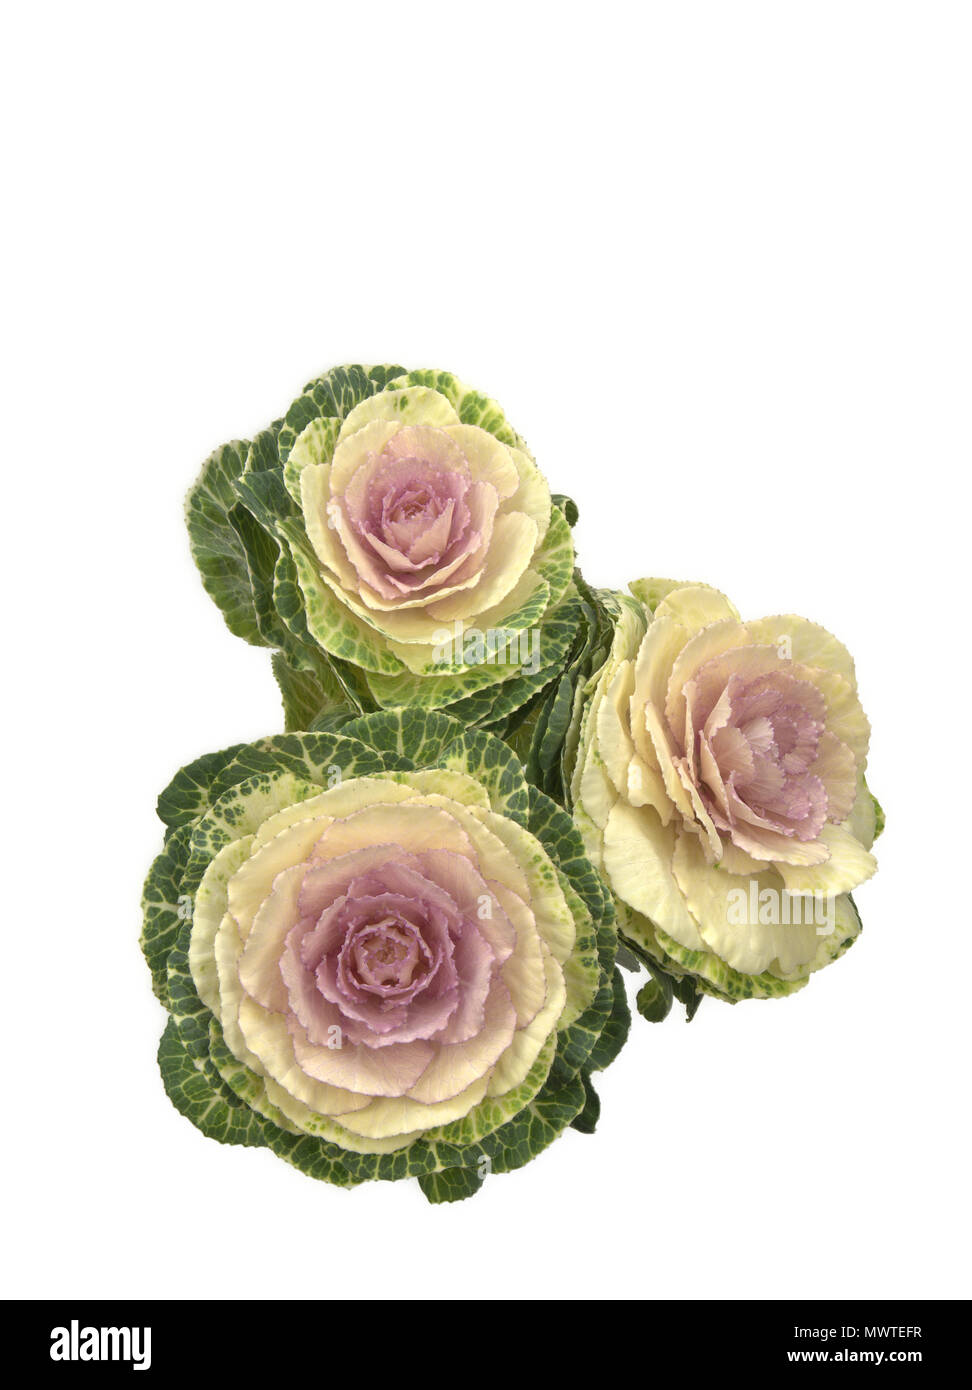 Ornamental Kale Isolated Against White Background Stock Photo